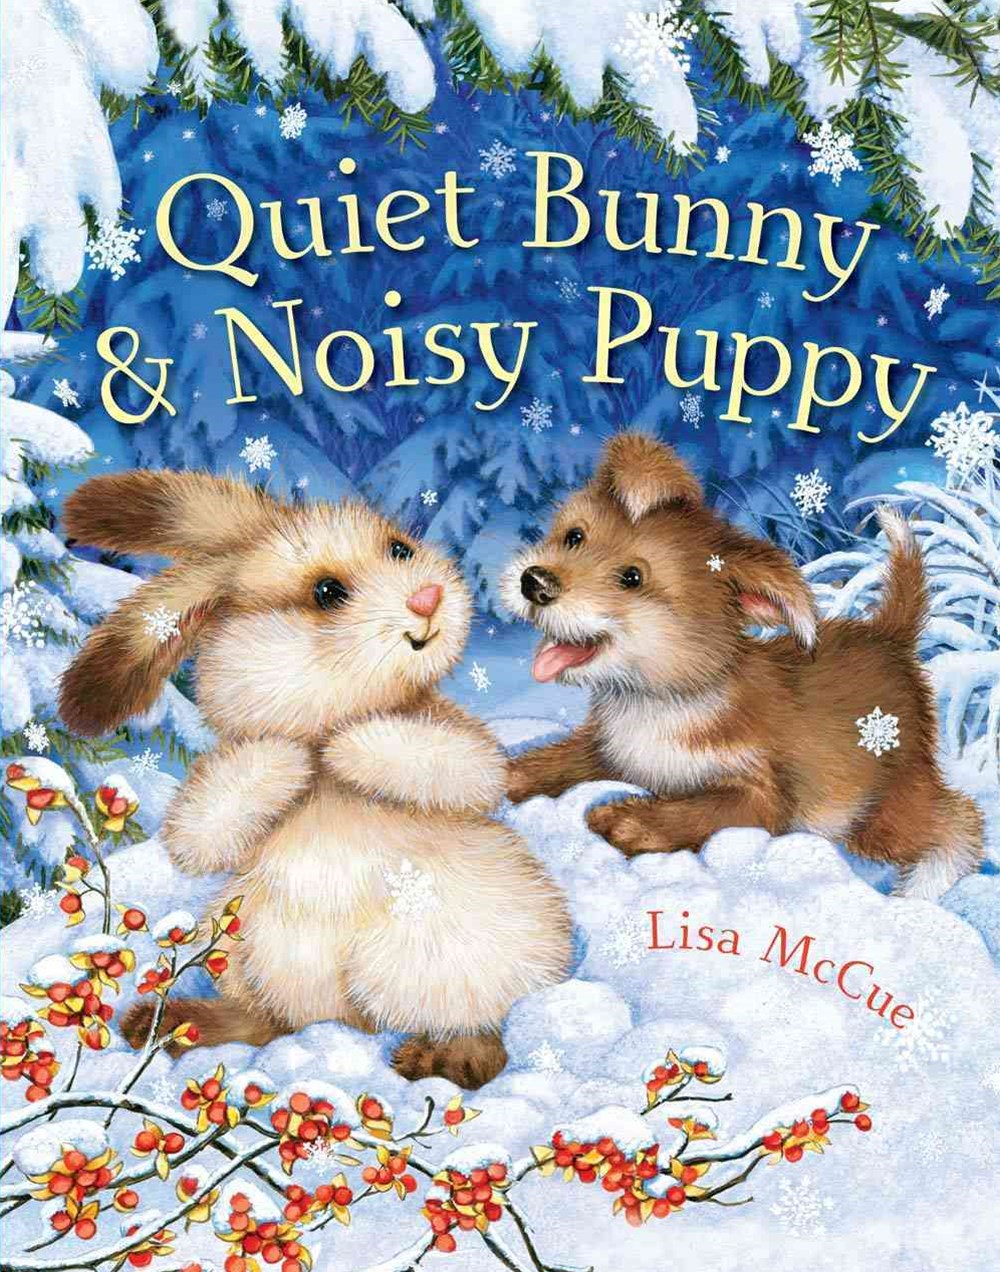 Quiet Bunny and Noisy Puppy